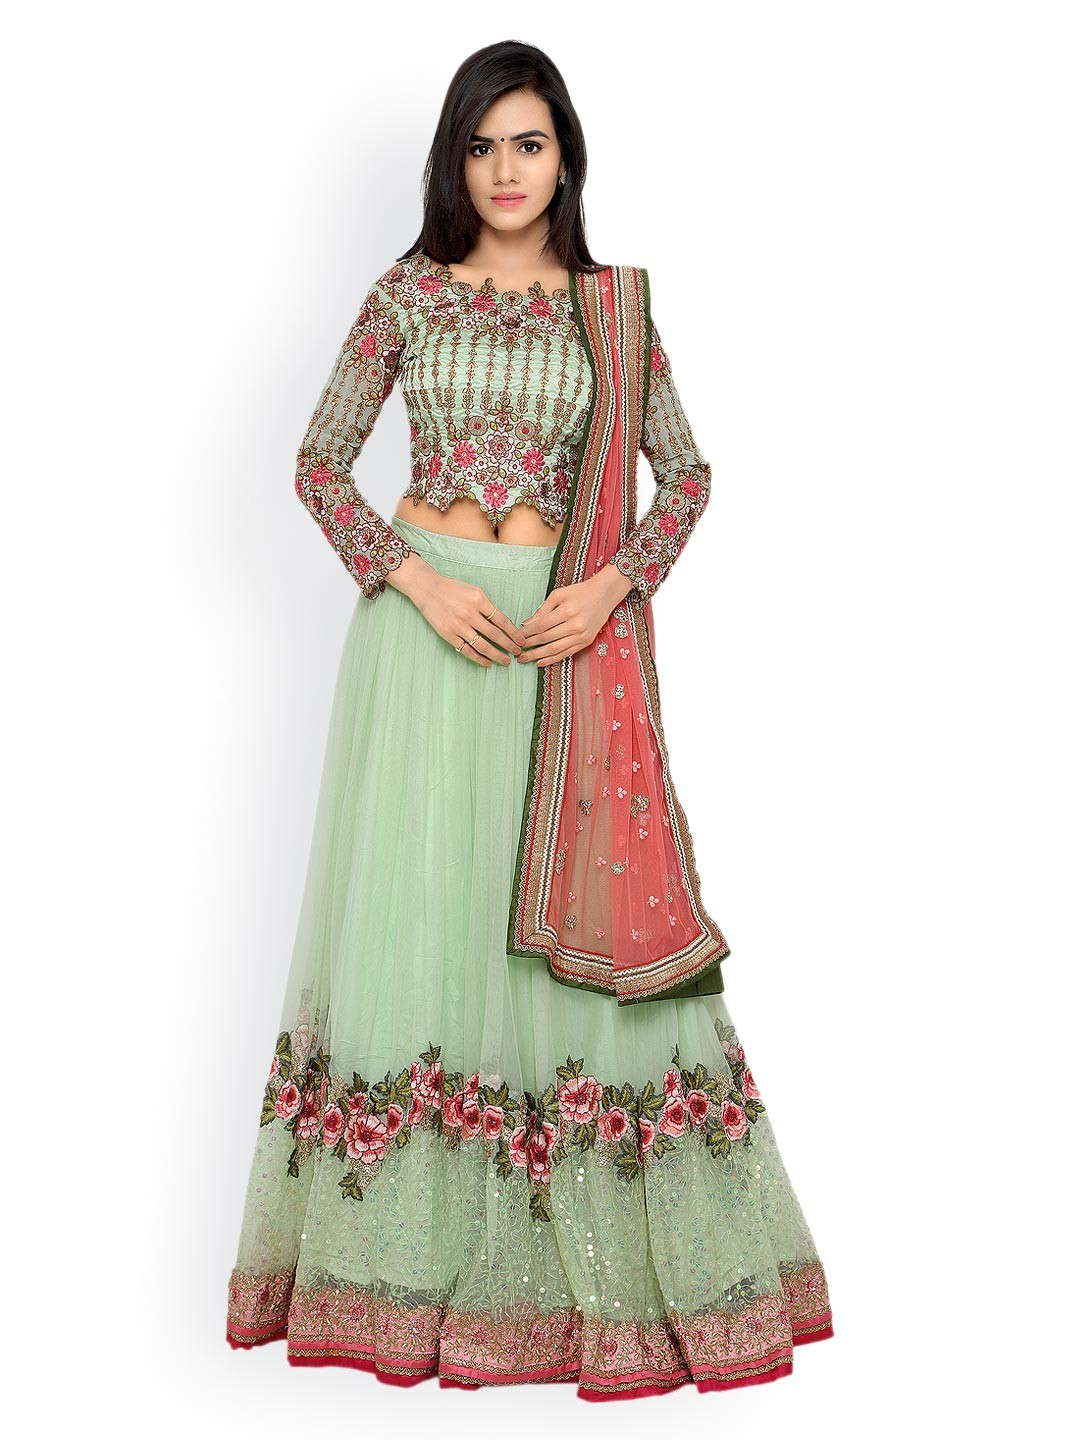 4 sangeet outfits for the bride